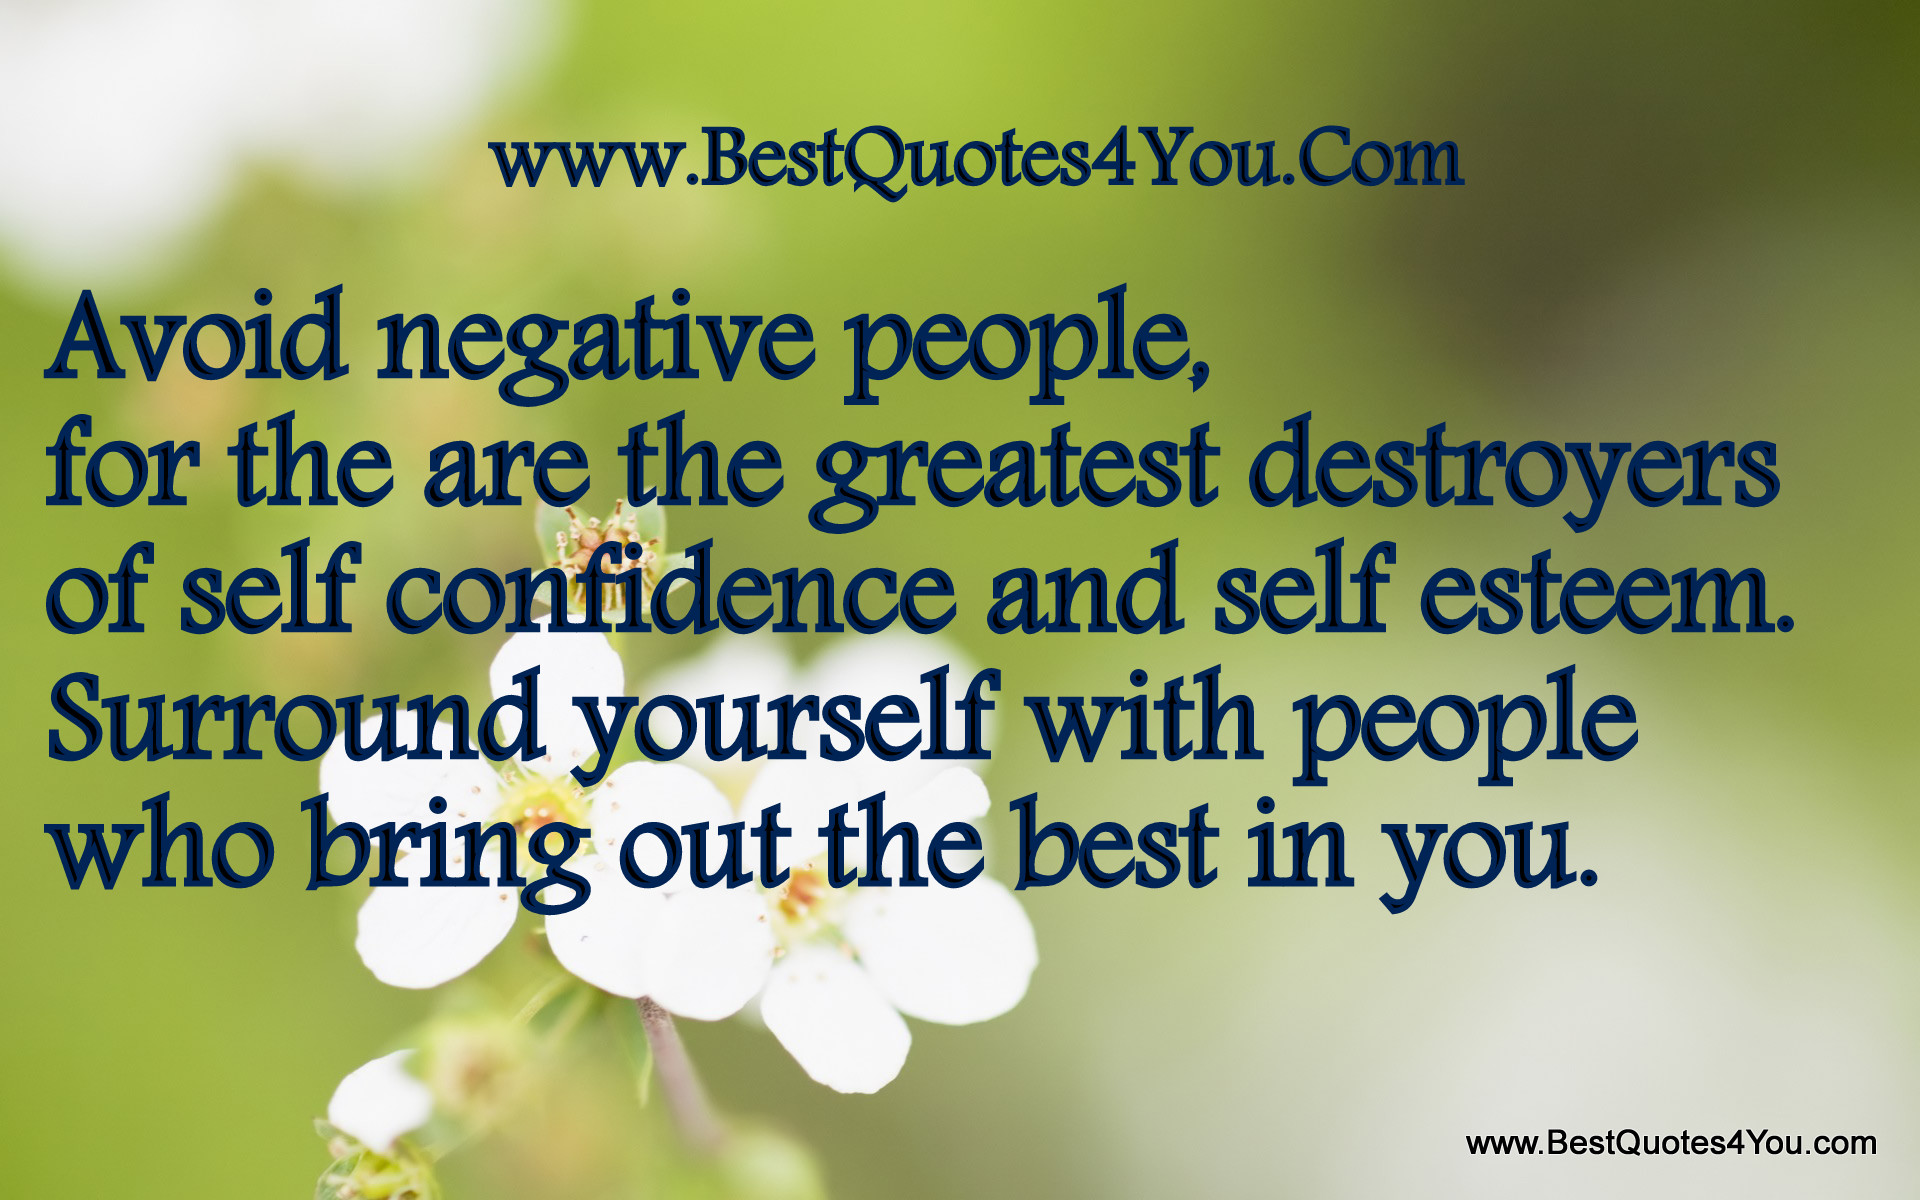 Quotes About Self Esteem Avoid Negative People For The Are The Greatest Destroyers Of Self